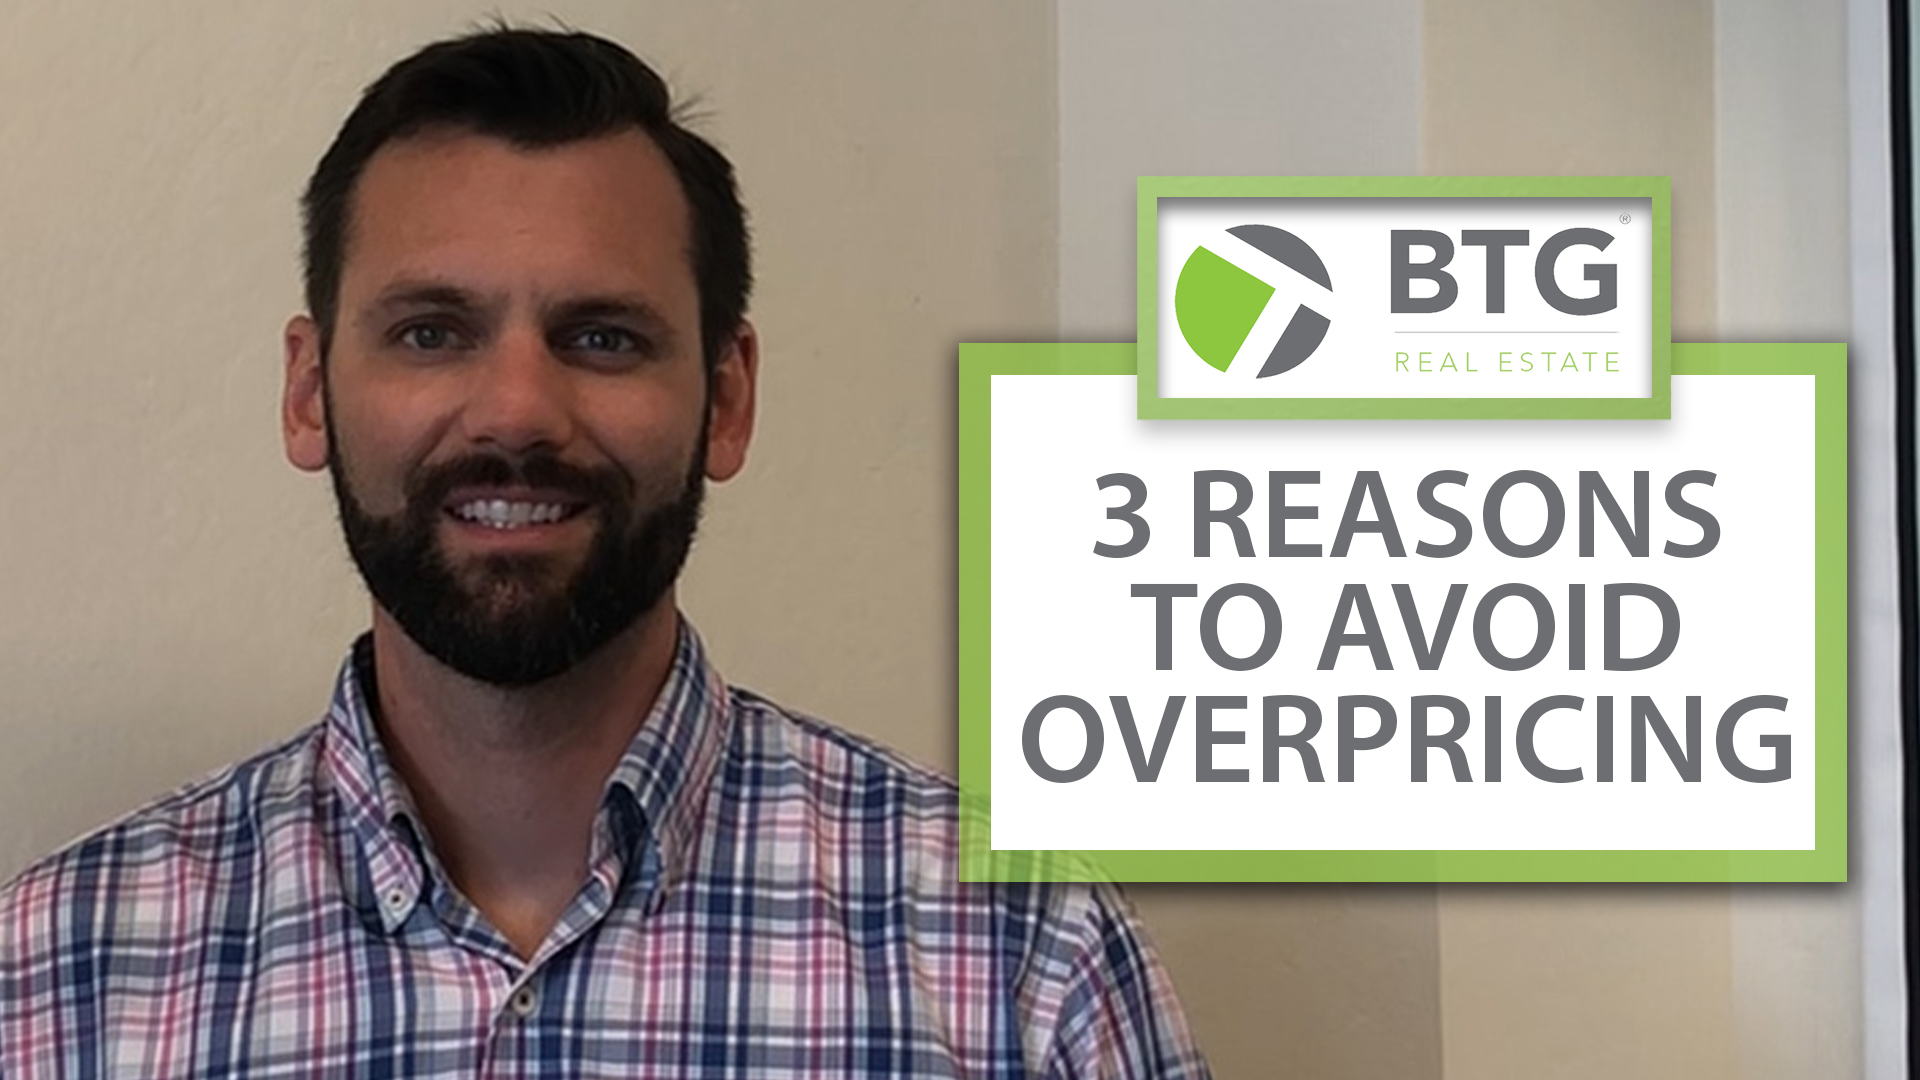 What Are the Pitfalls of Overpricing a Home?